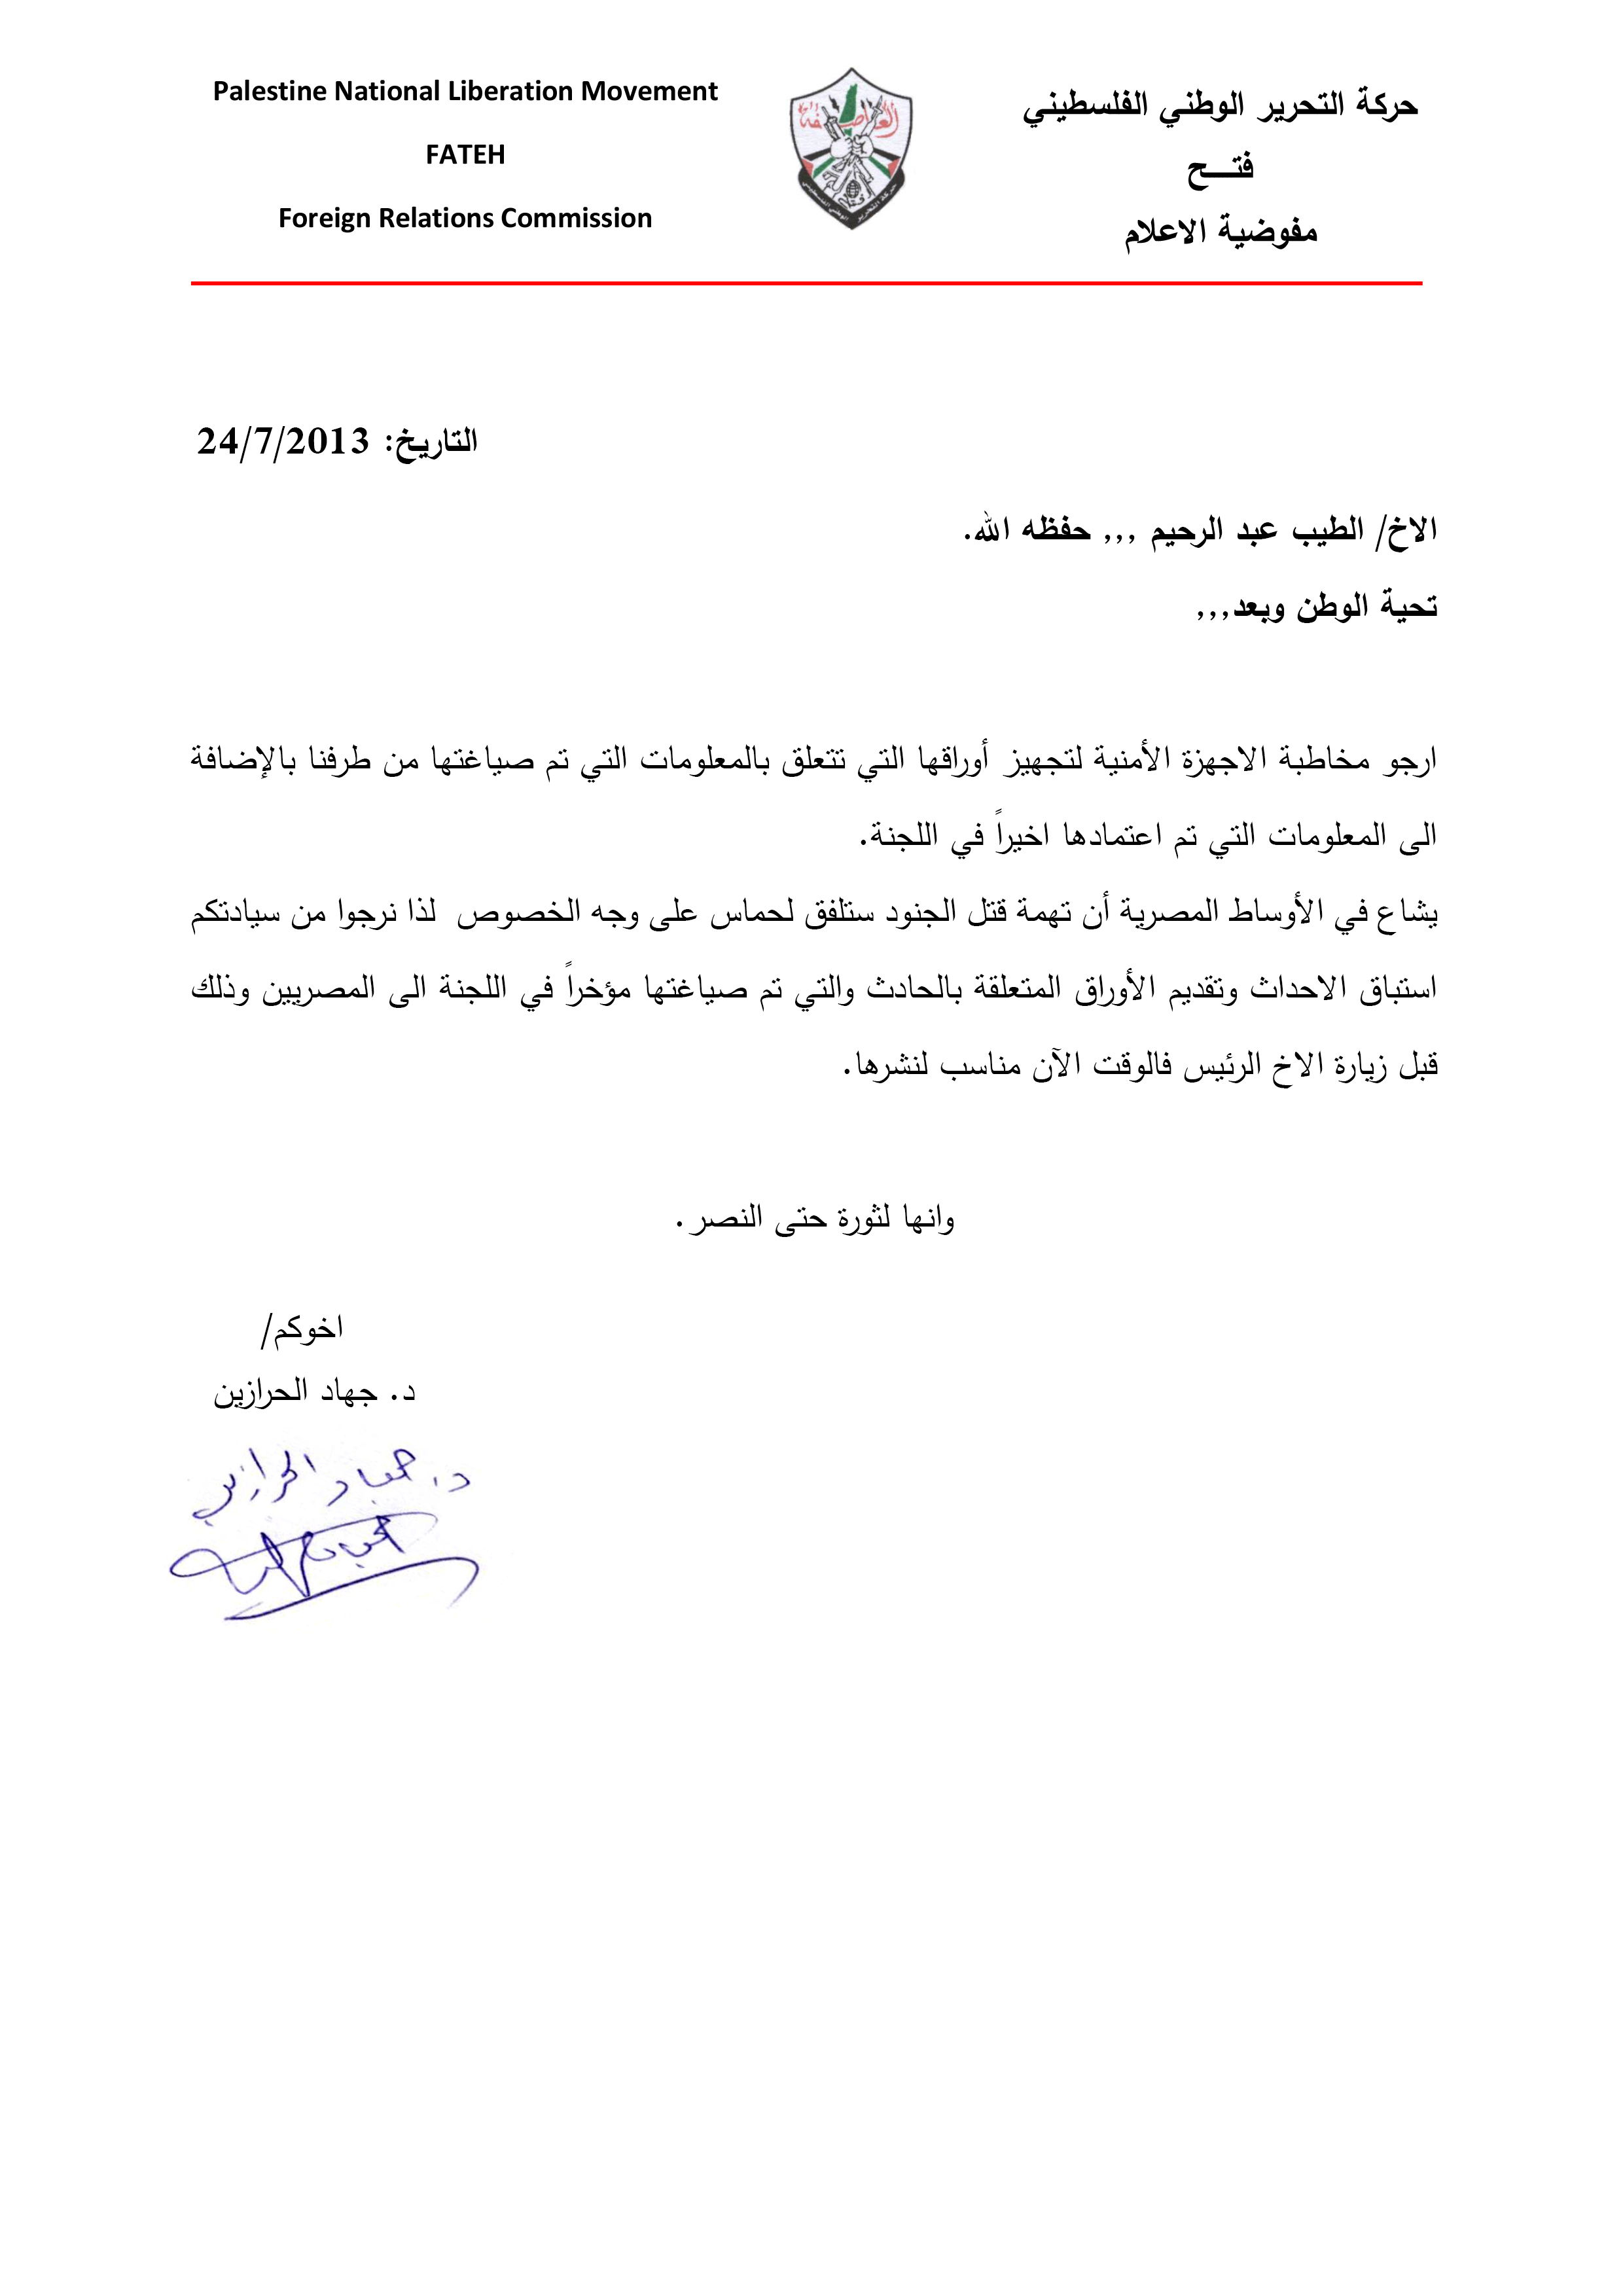 No objection letter meaning in arabic lvelegant hamas fes letters from fatah update elder of ziyon israel spiritdancerdesigns Image collections